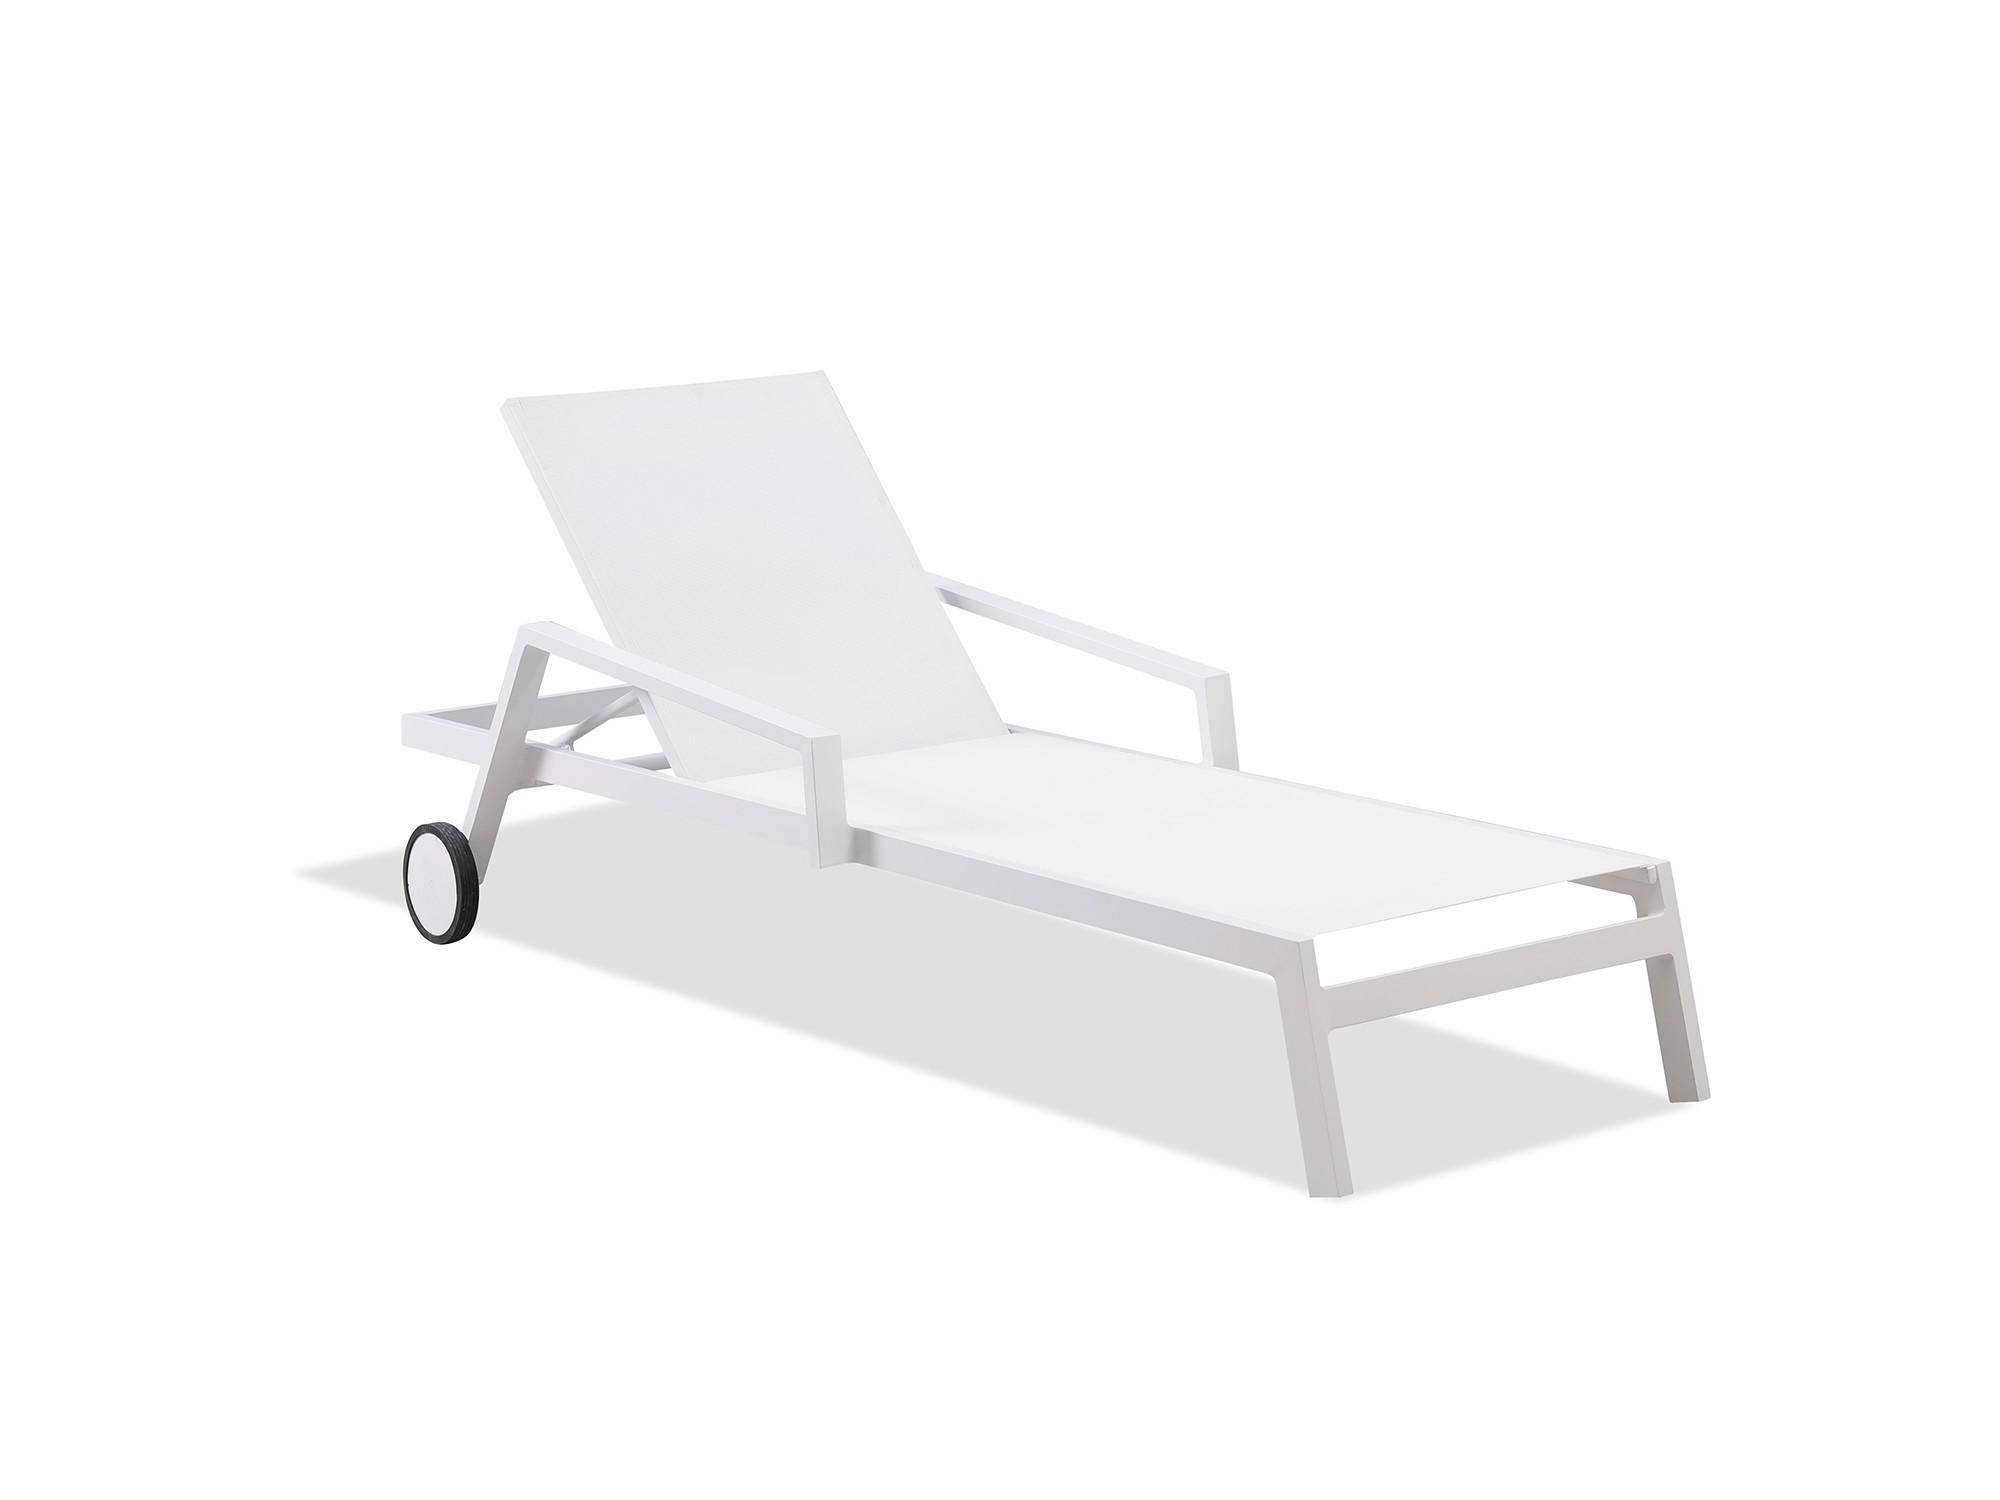 Well Liked Outdoor Chaise Lounge W/wheels Set 2pcs White Bondi For Plastic Chaise Lounges W/ Wheels (View 16 of 25)